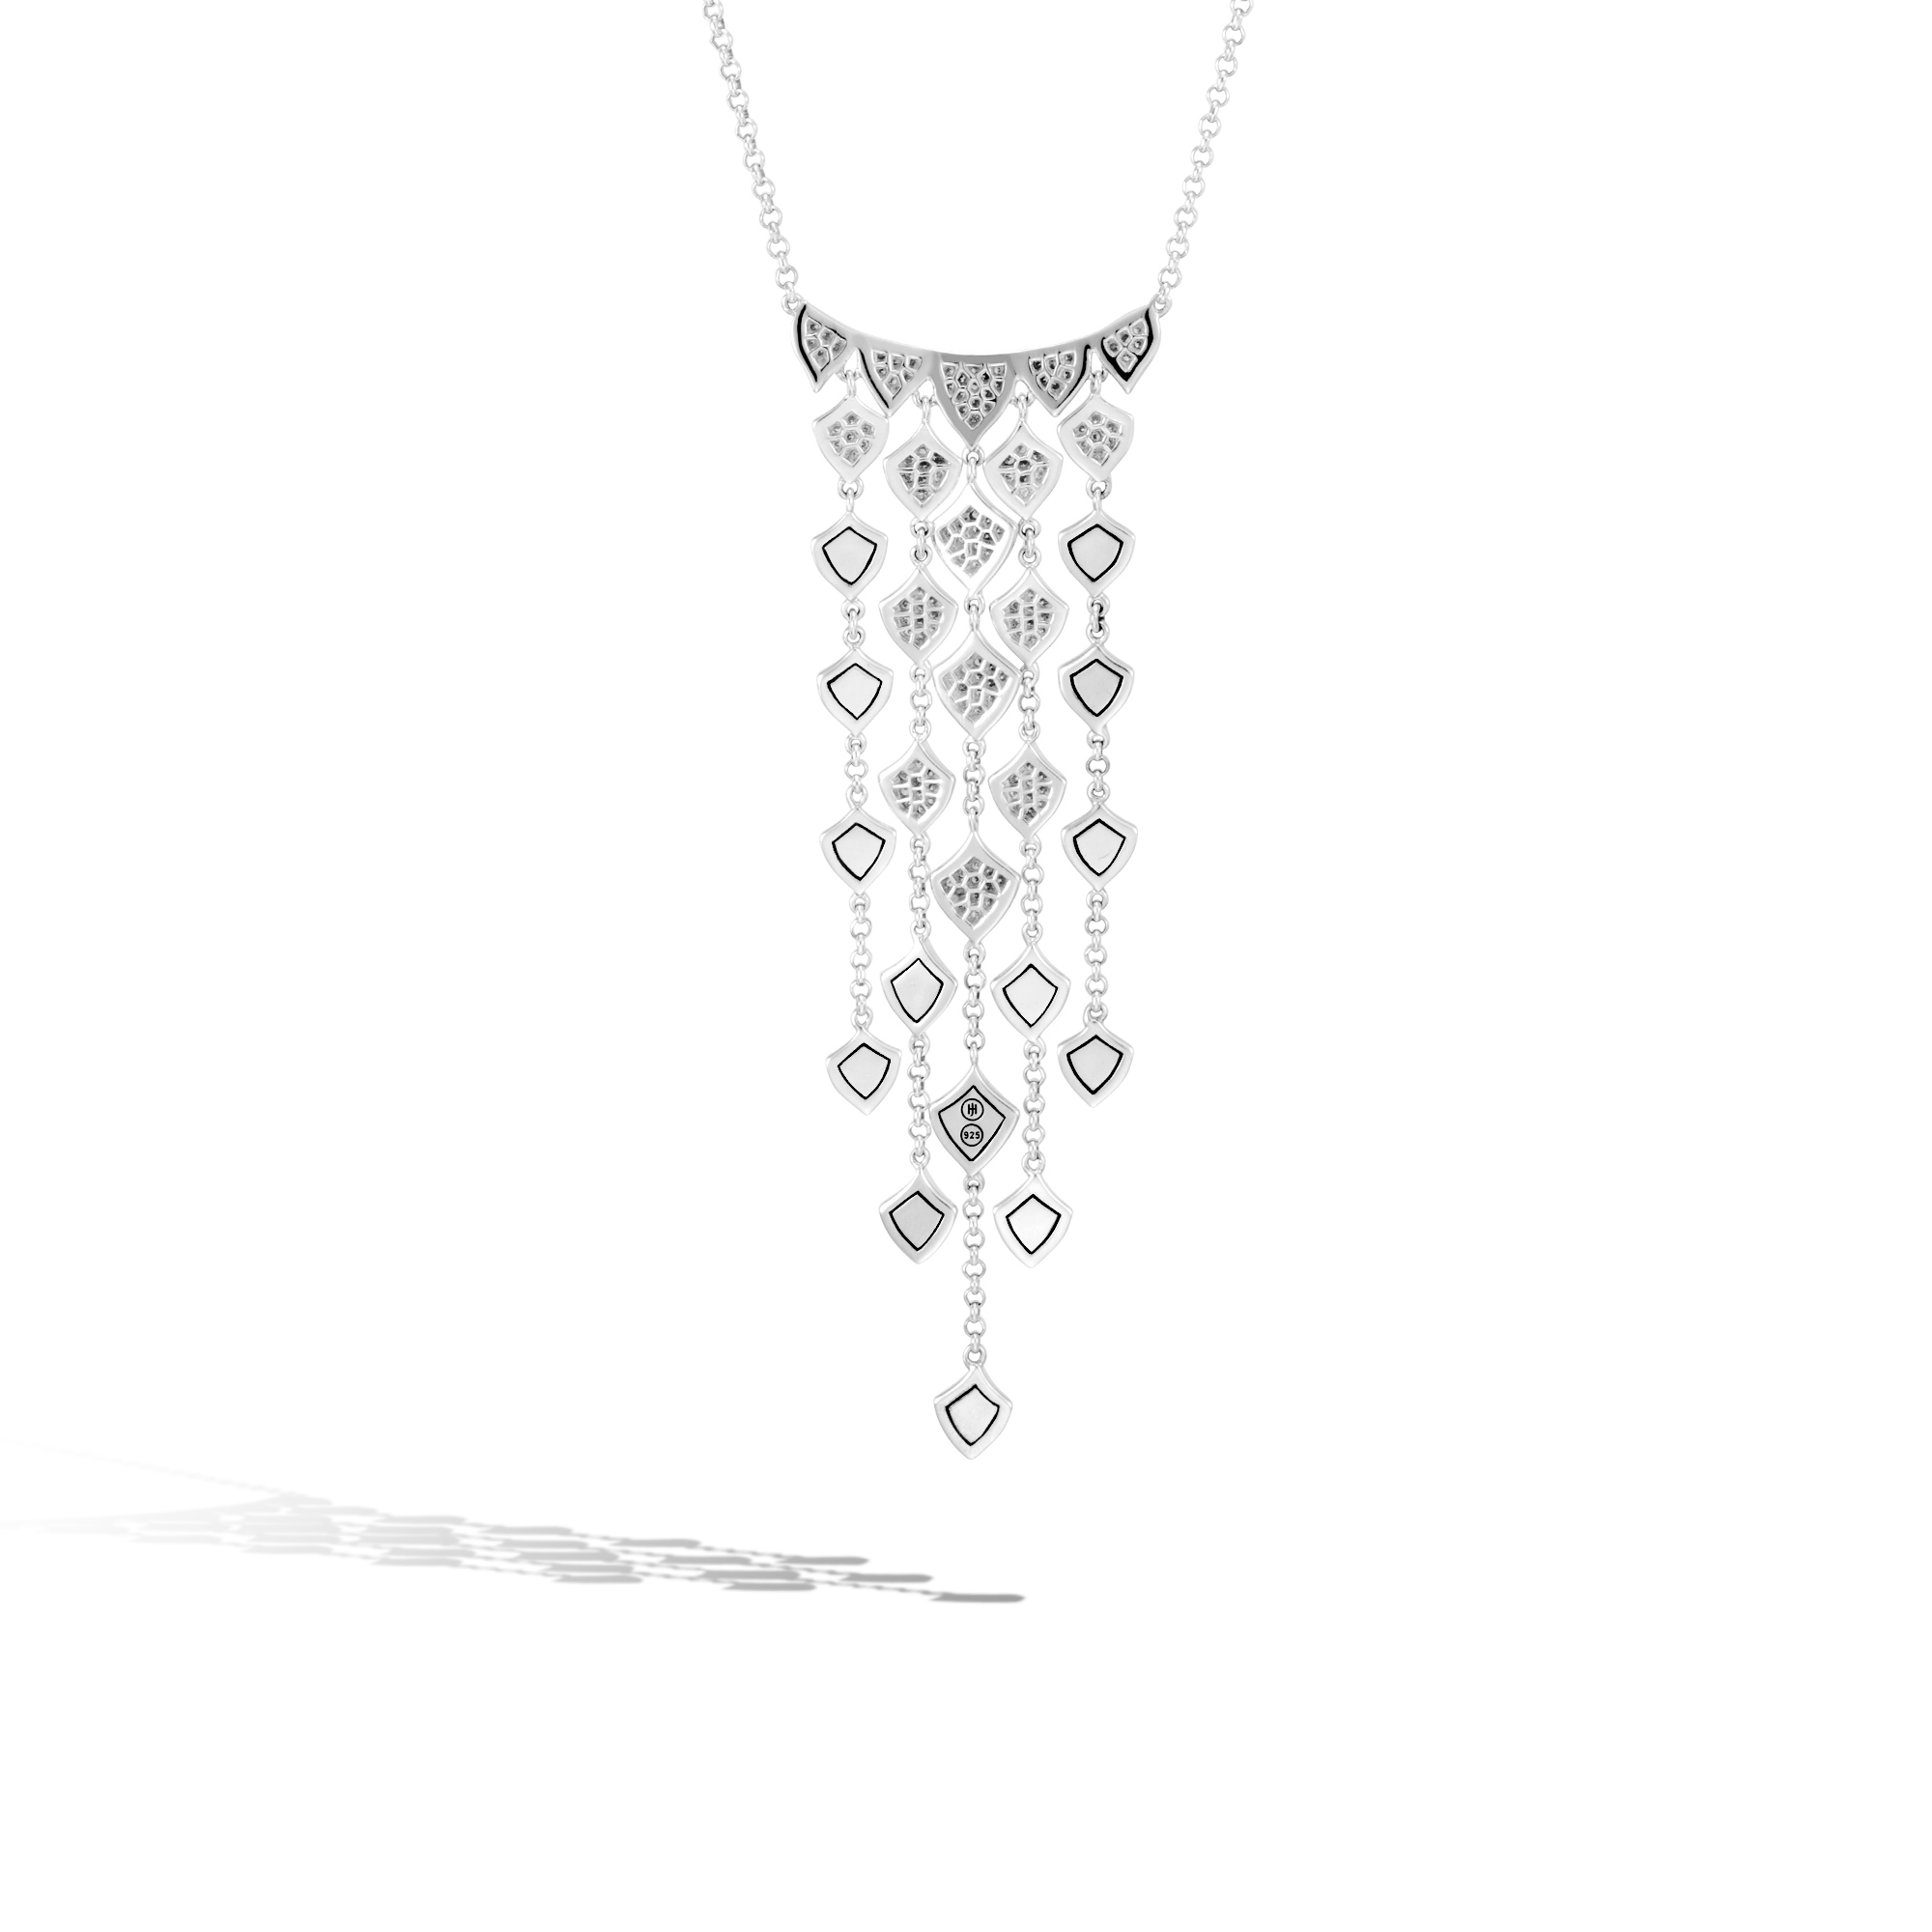 Legends Naga Necklace in Silver with Diamonds, White Diamond, large